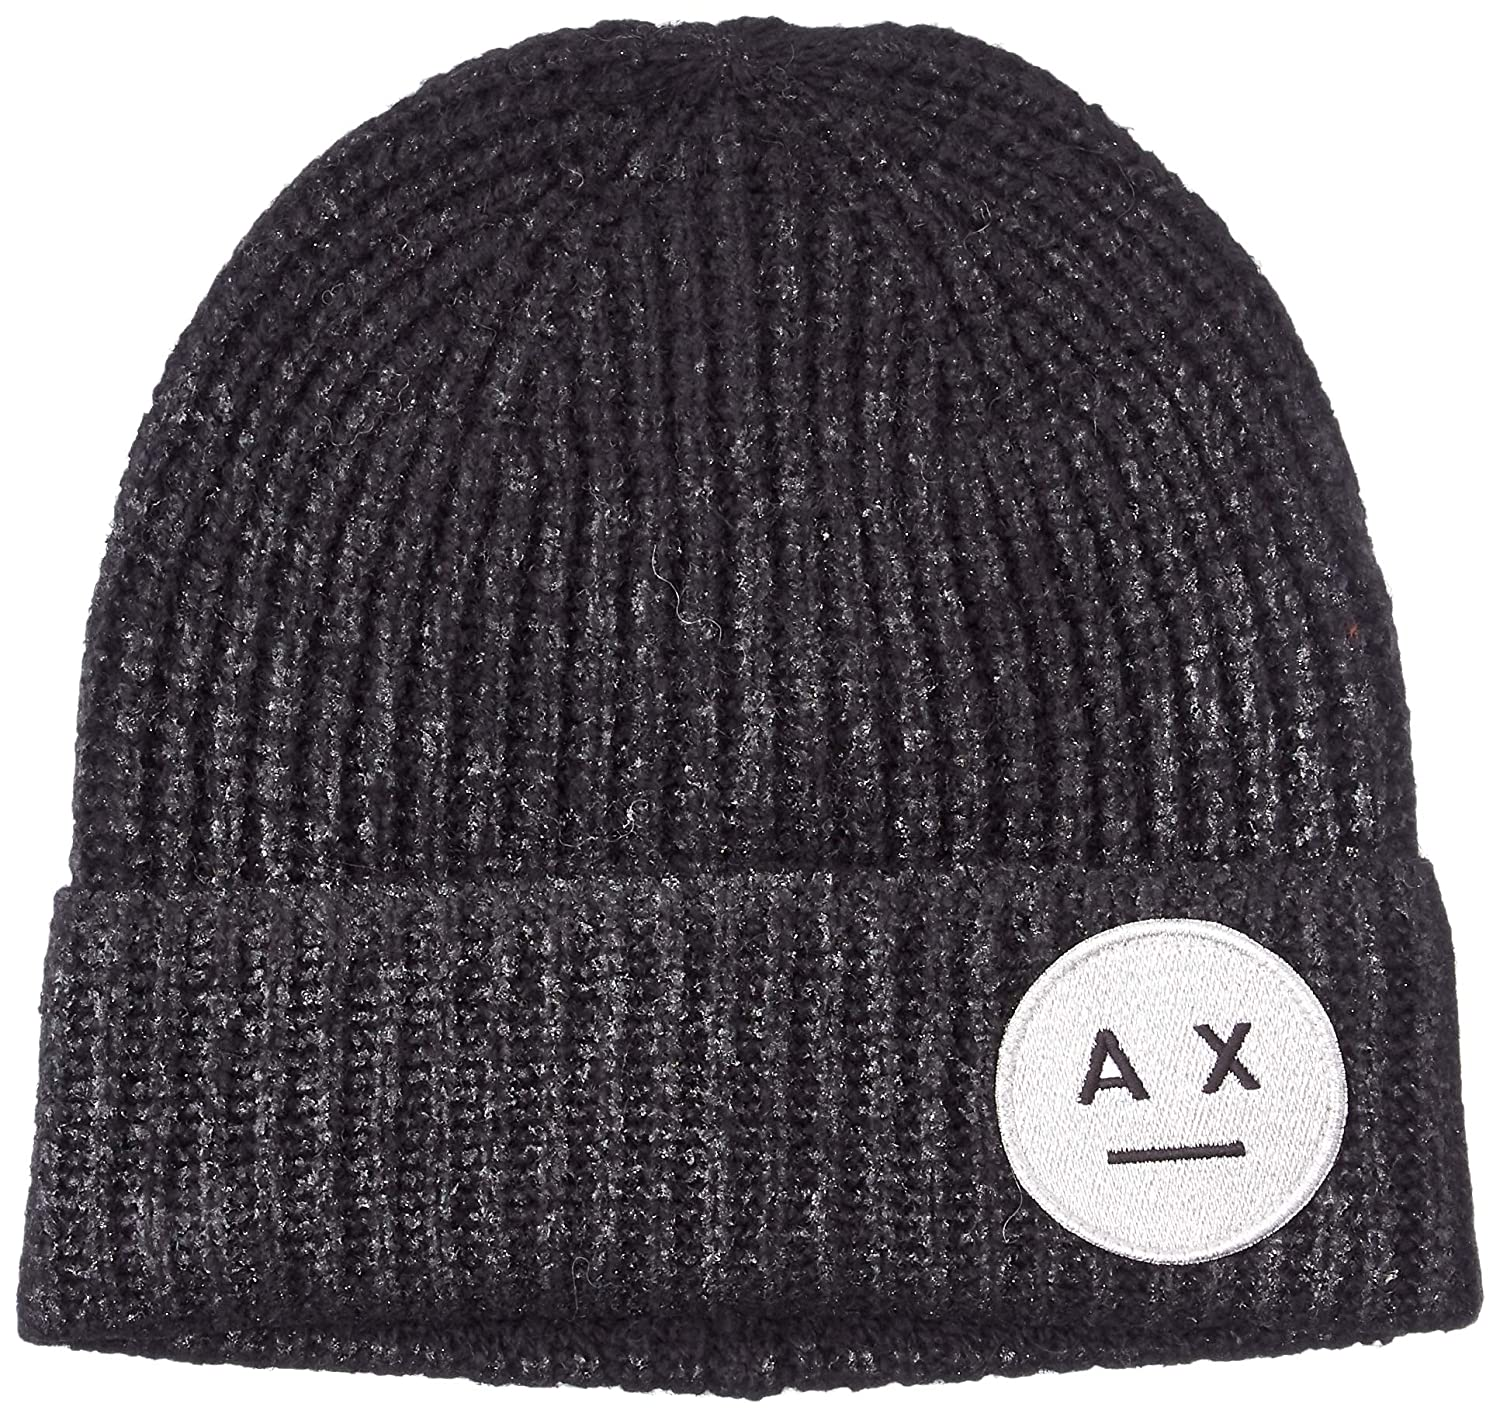 Black Dyecoated Dtm Medium A X Armani Exchange Womens Smile Logo Beanie Beanie Hat